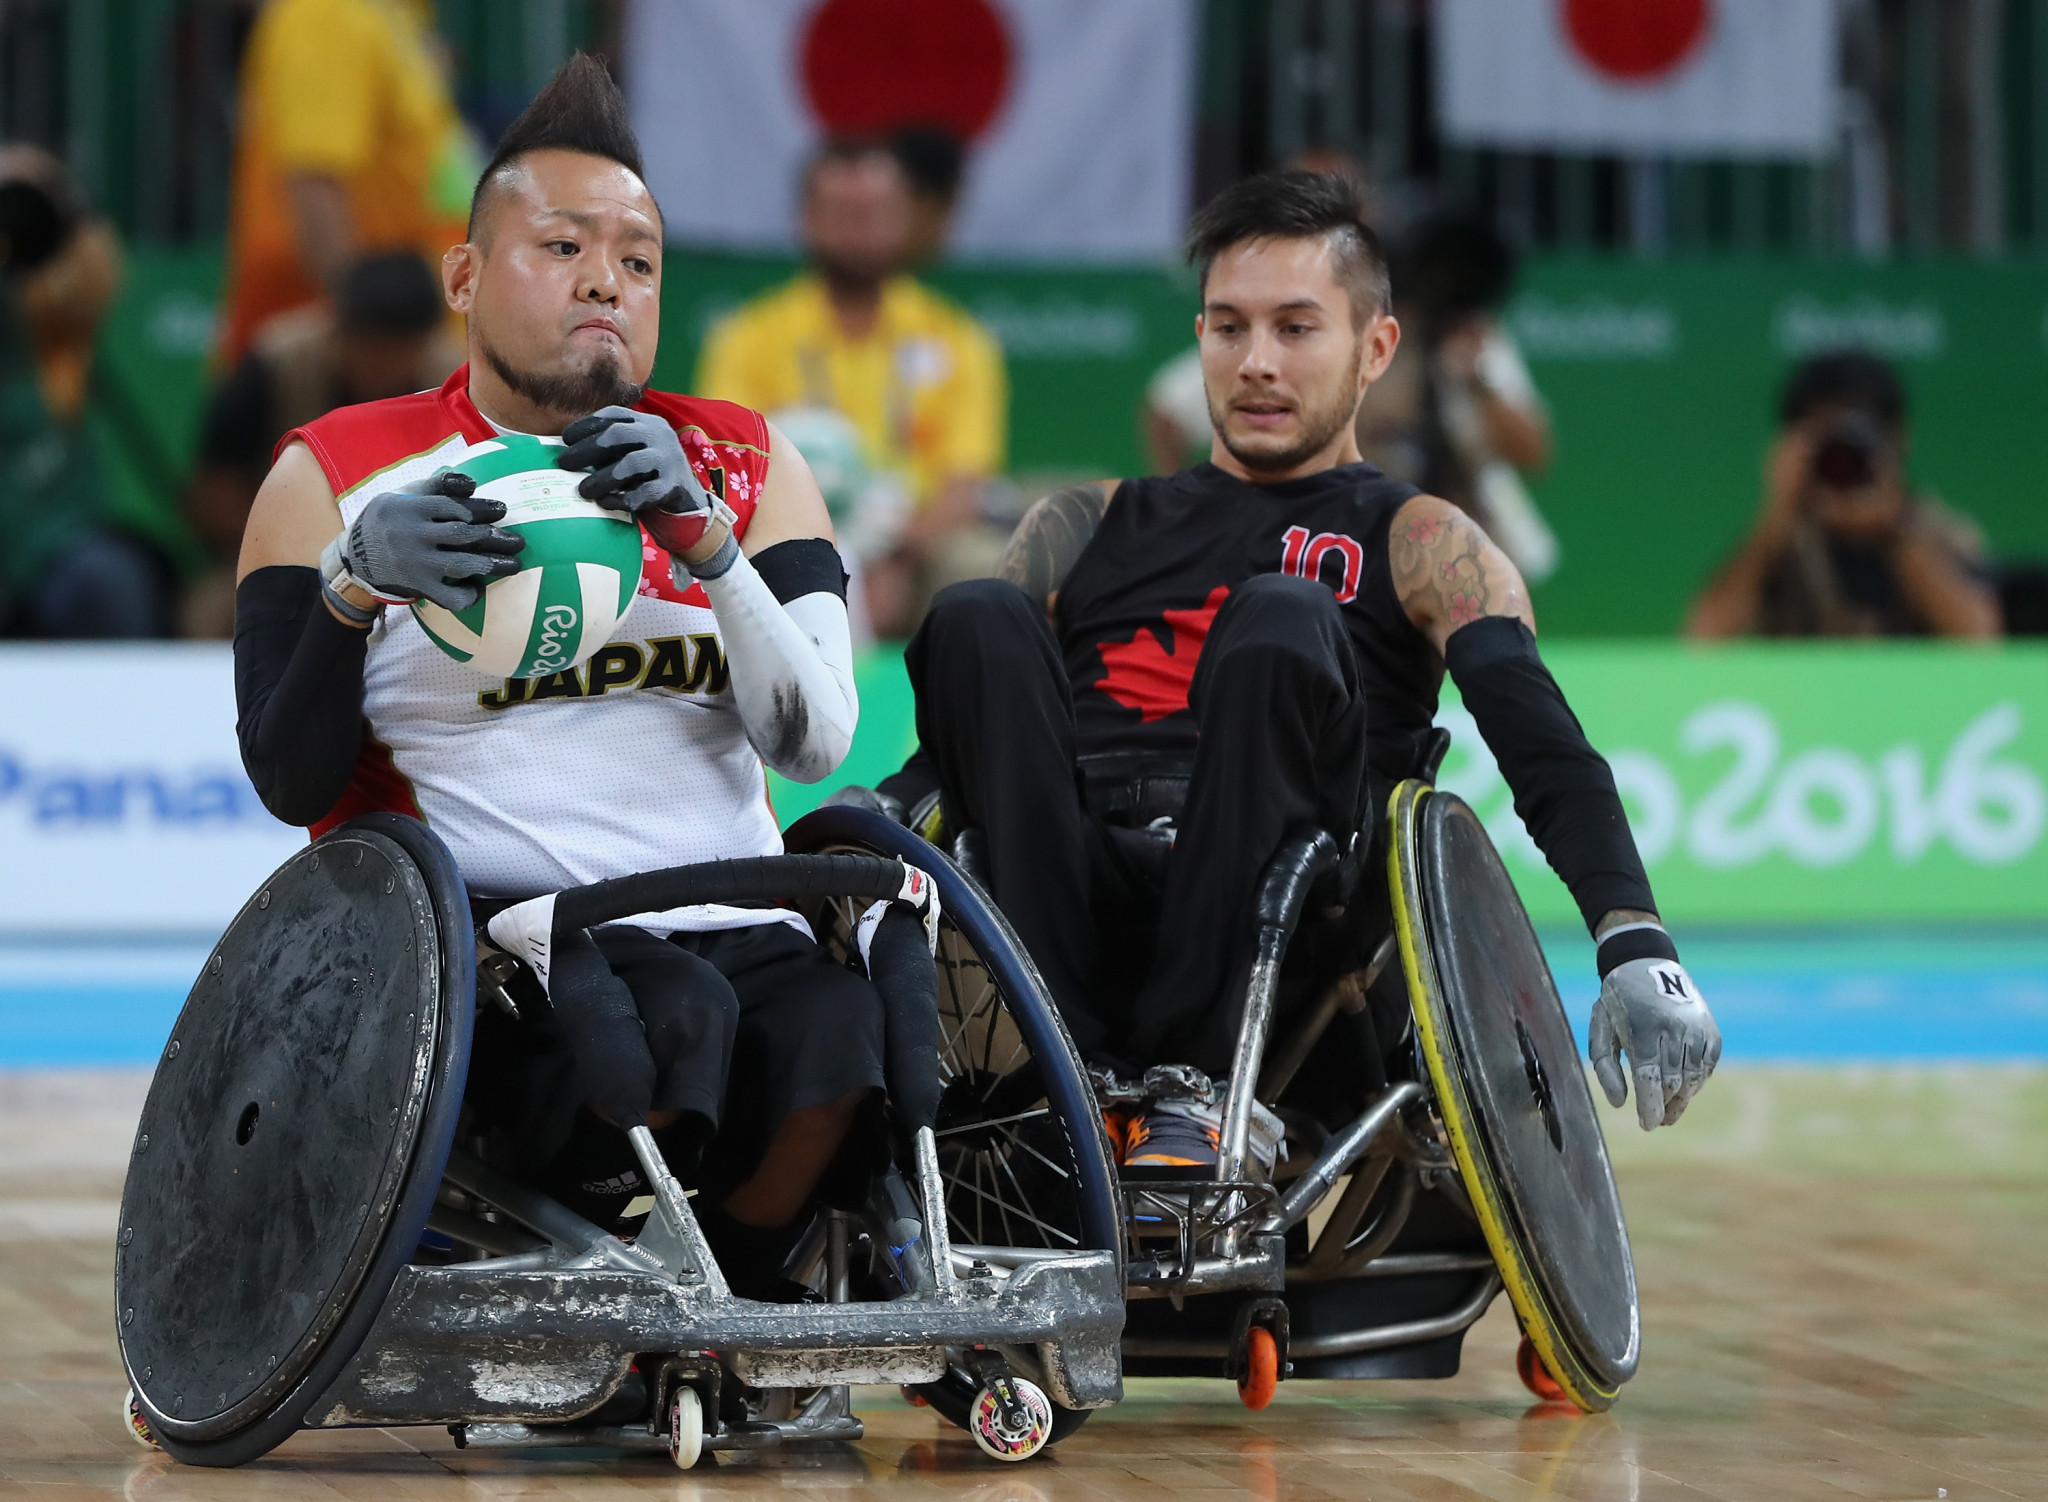 Tokyo 2020 wheelchair rugby test event cancelled due to coronavirus